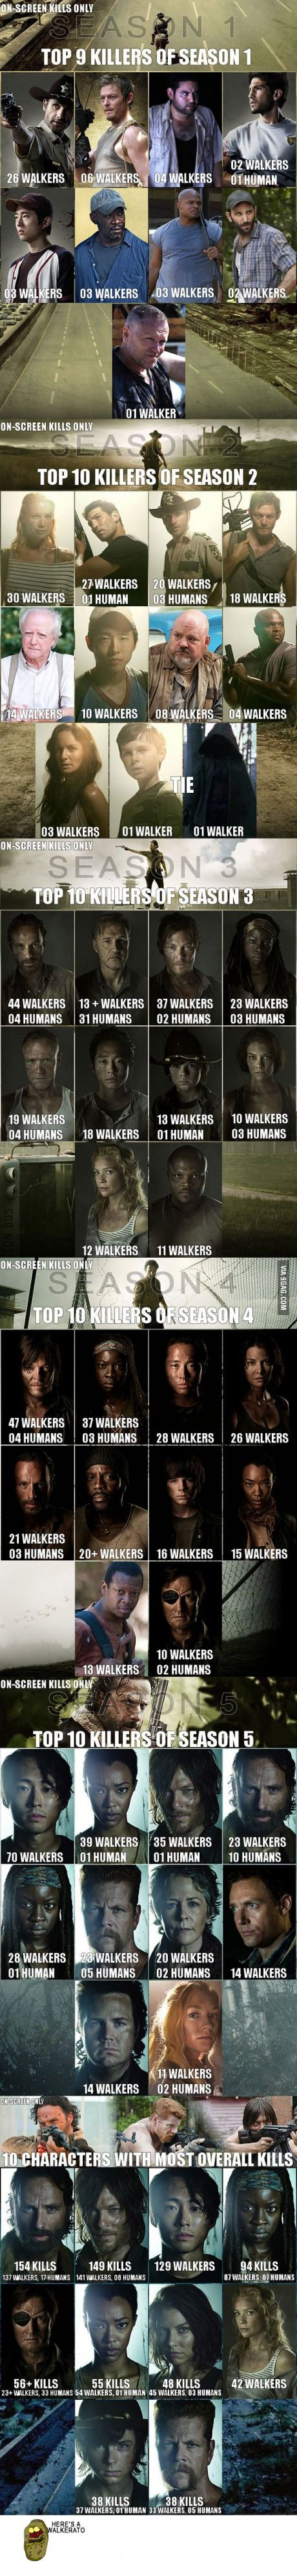 TWD top 10 Characters with most on-screen kills all seasons! (Interesting sh*t)